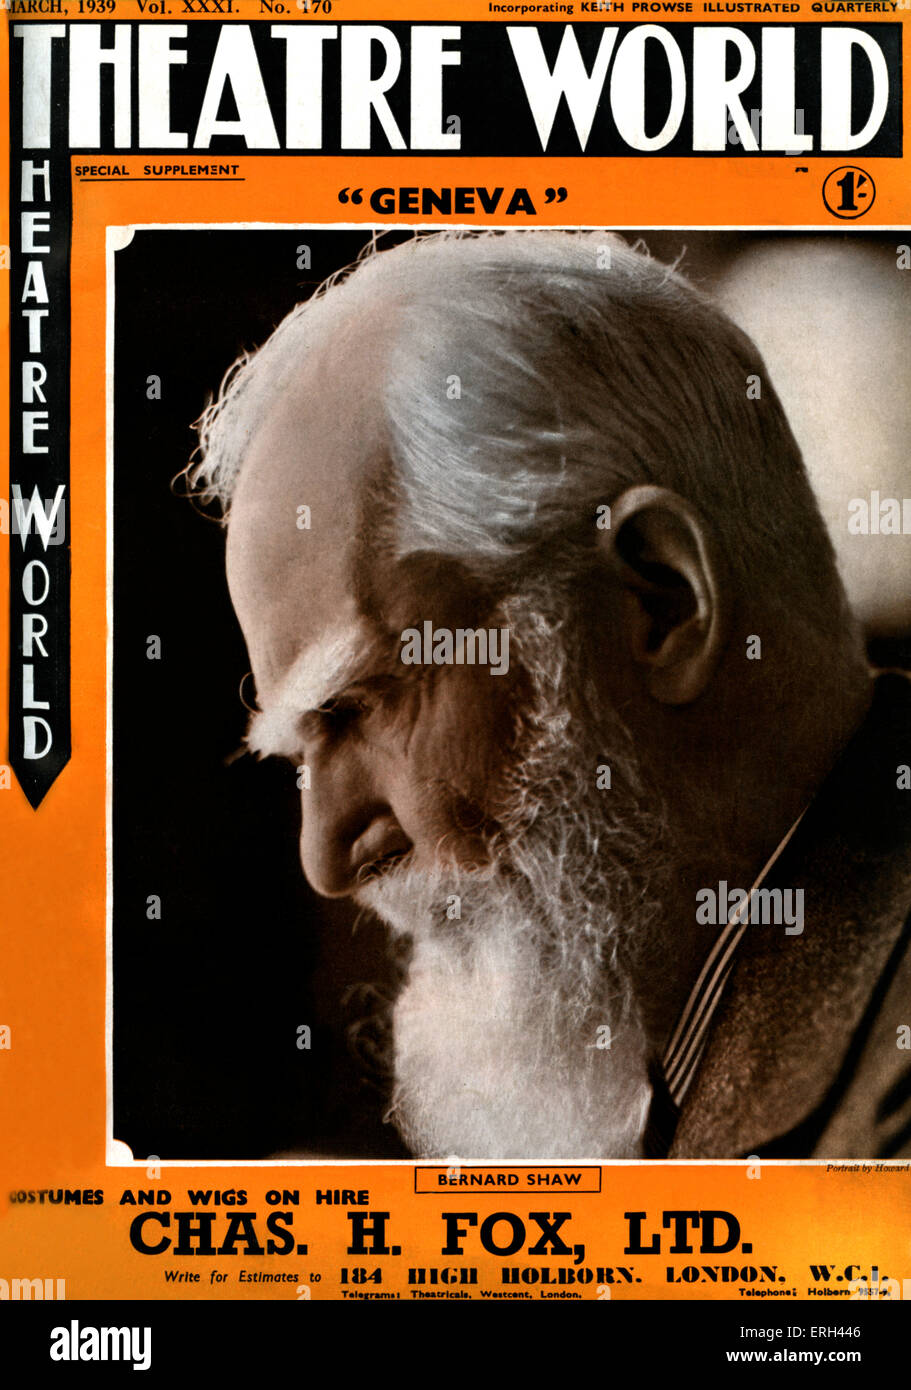 George Bernard Shaw,  On the cover of 'Theatre World', March 1939. Irish playwright, 26 July 1856 – 2 November - Stock Image